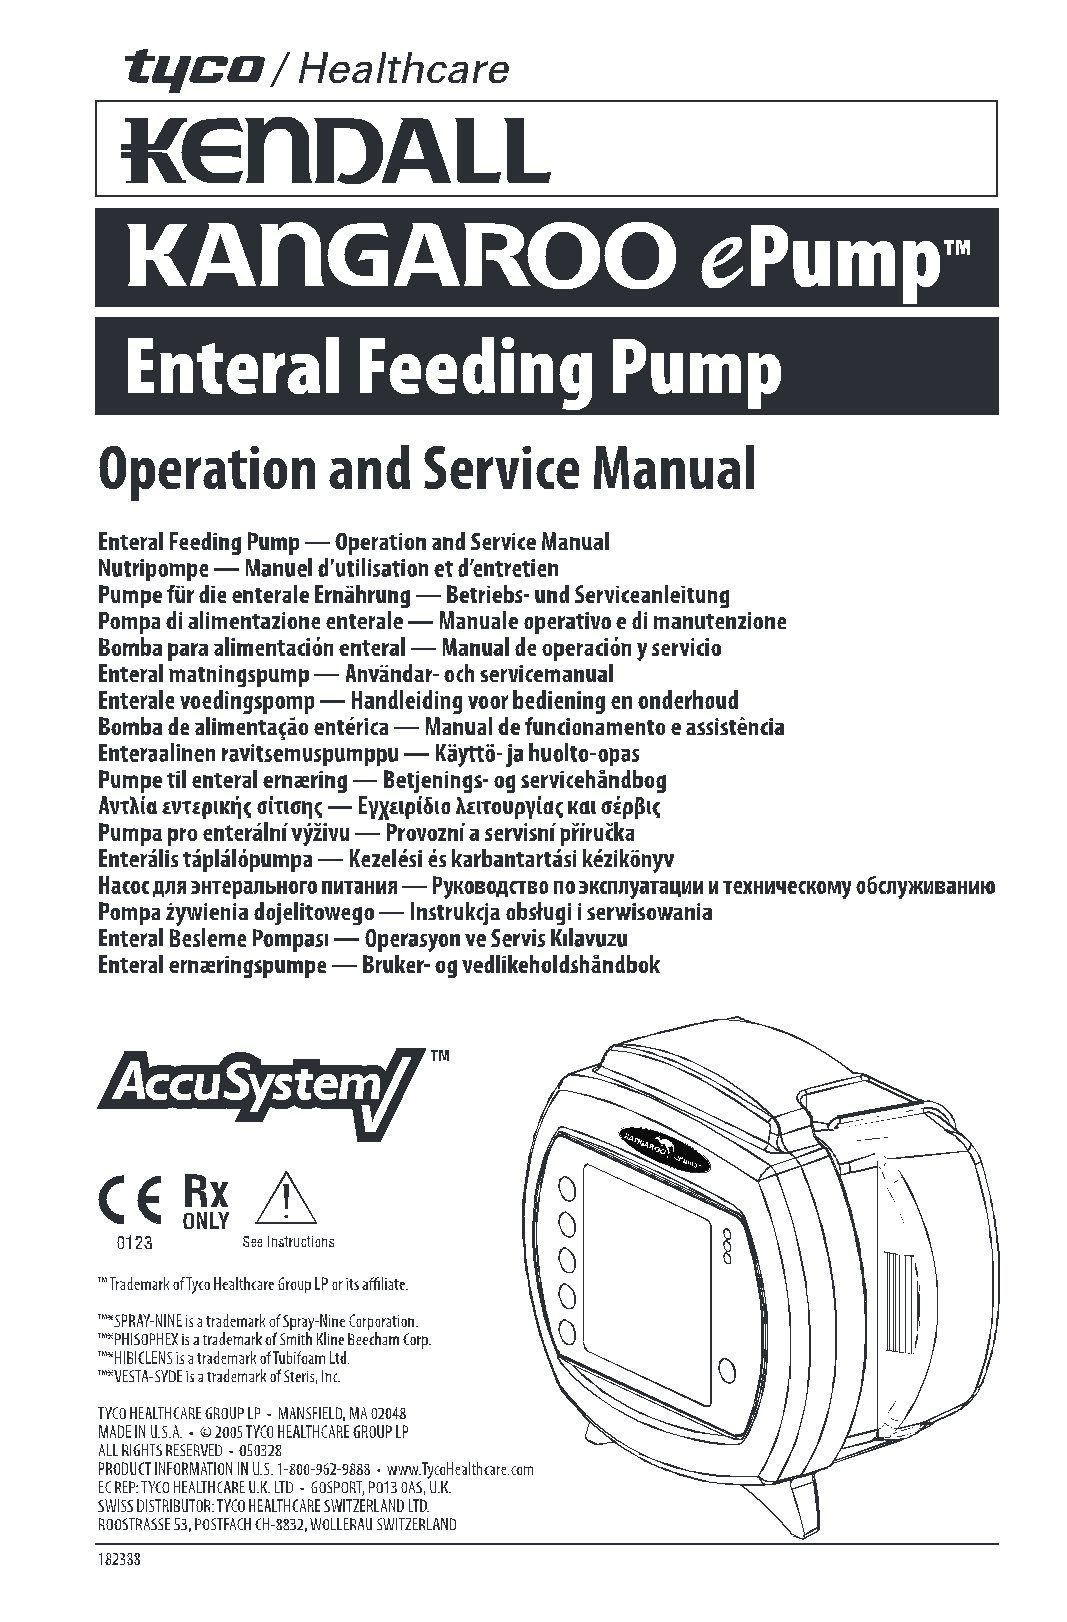 Kendall Kangaroo ePump Service manual – Golden BioMed